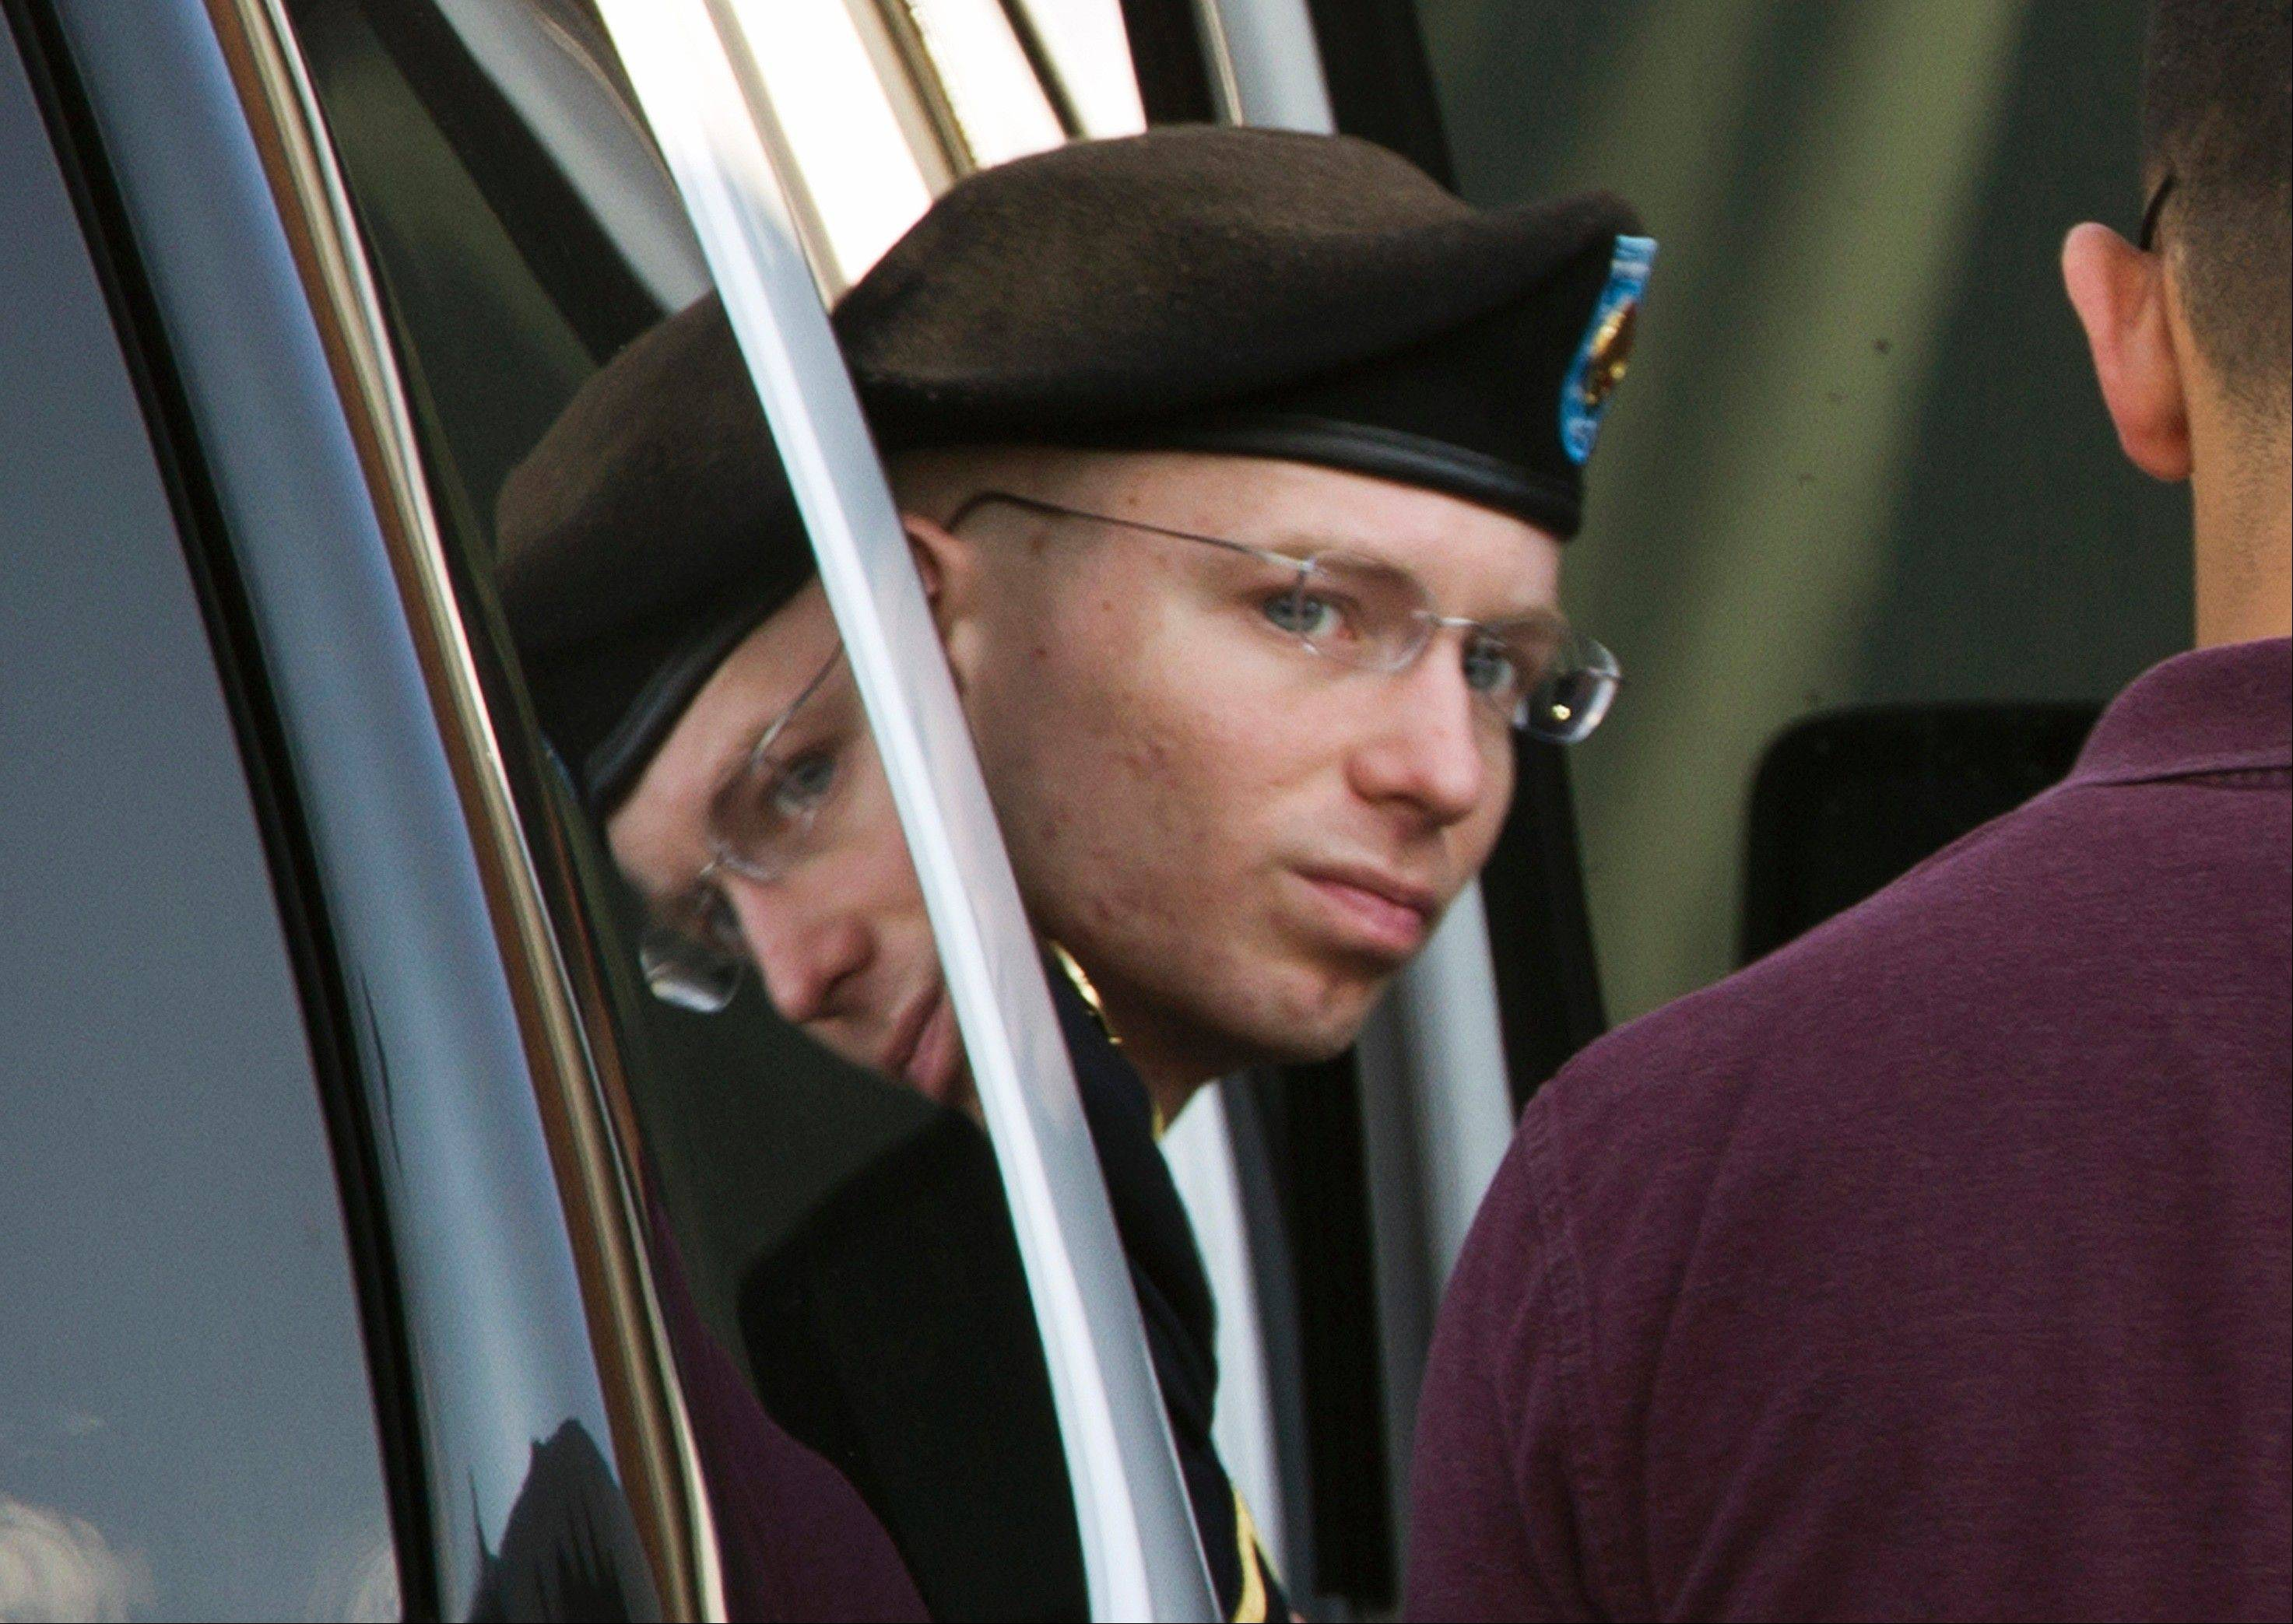 Army Pfc. Bradley Manning said in a writtens statement provided to NBC�s �Today� show that he plans to live as a woman named Chelsea.